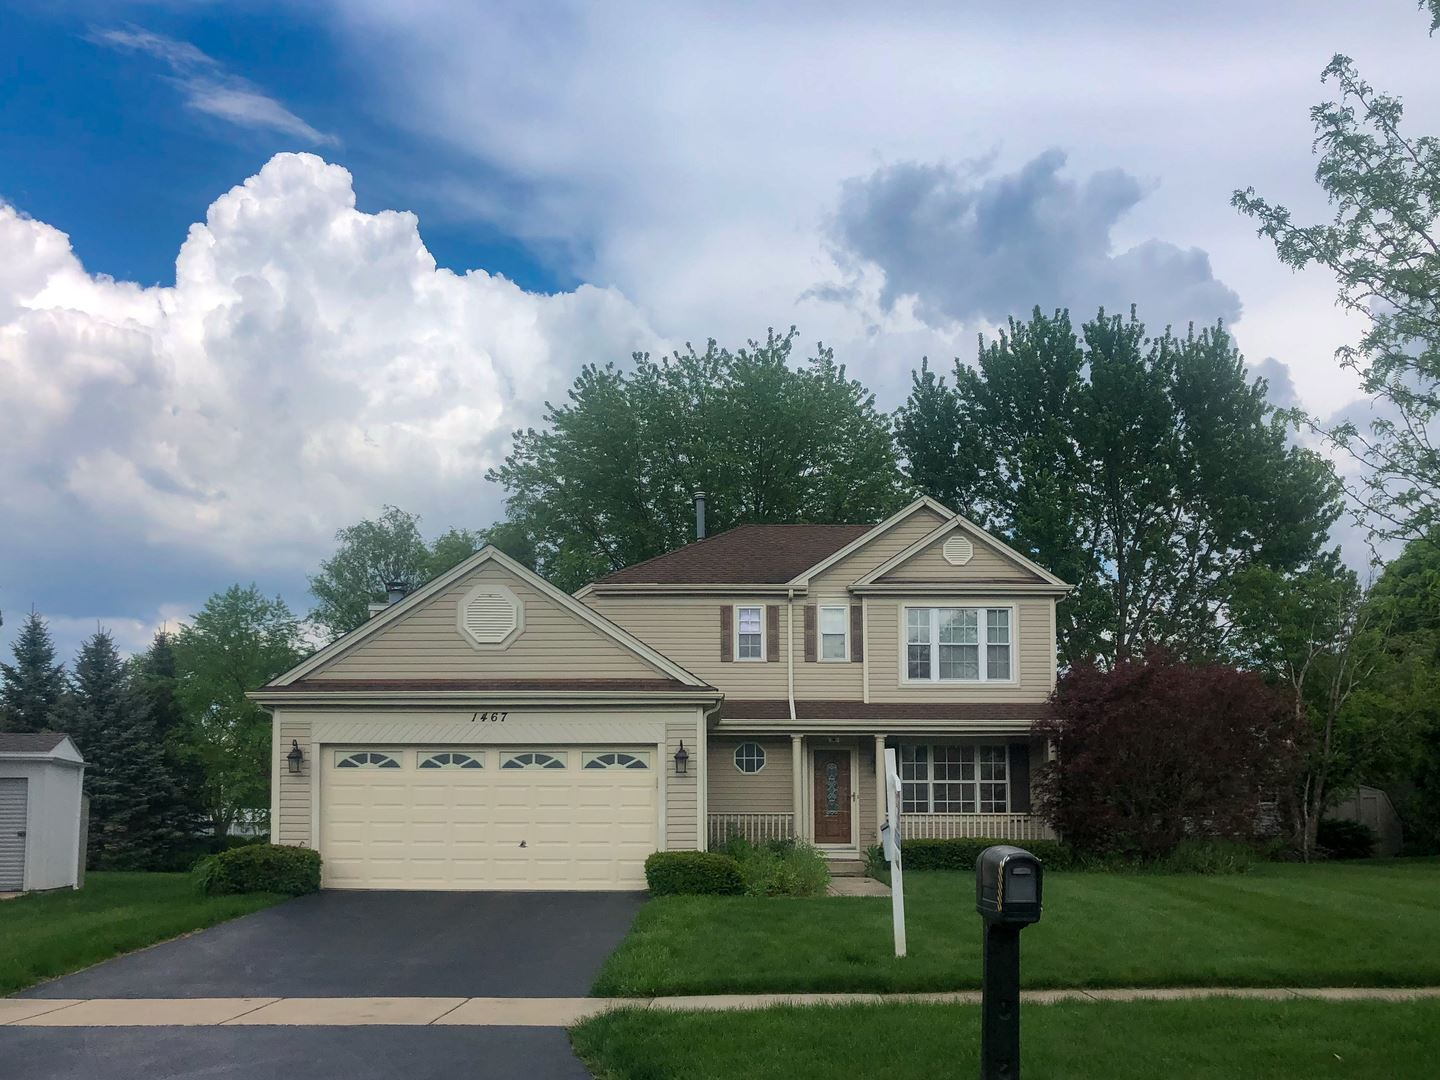 1467 Magnolia Way, Carol Stream, IL 60188 - #: 10764500